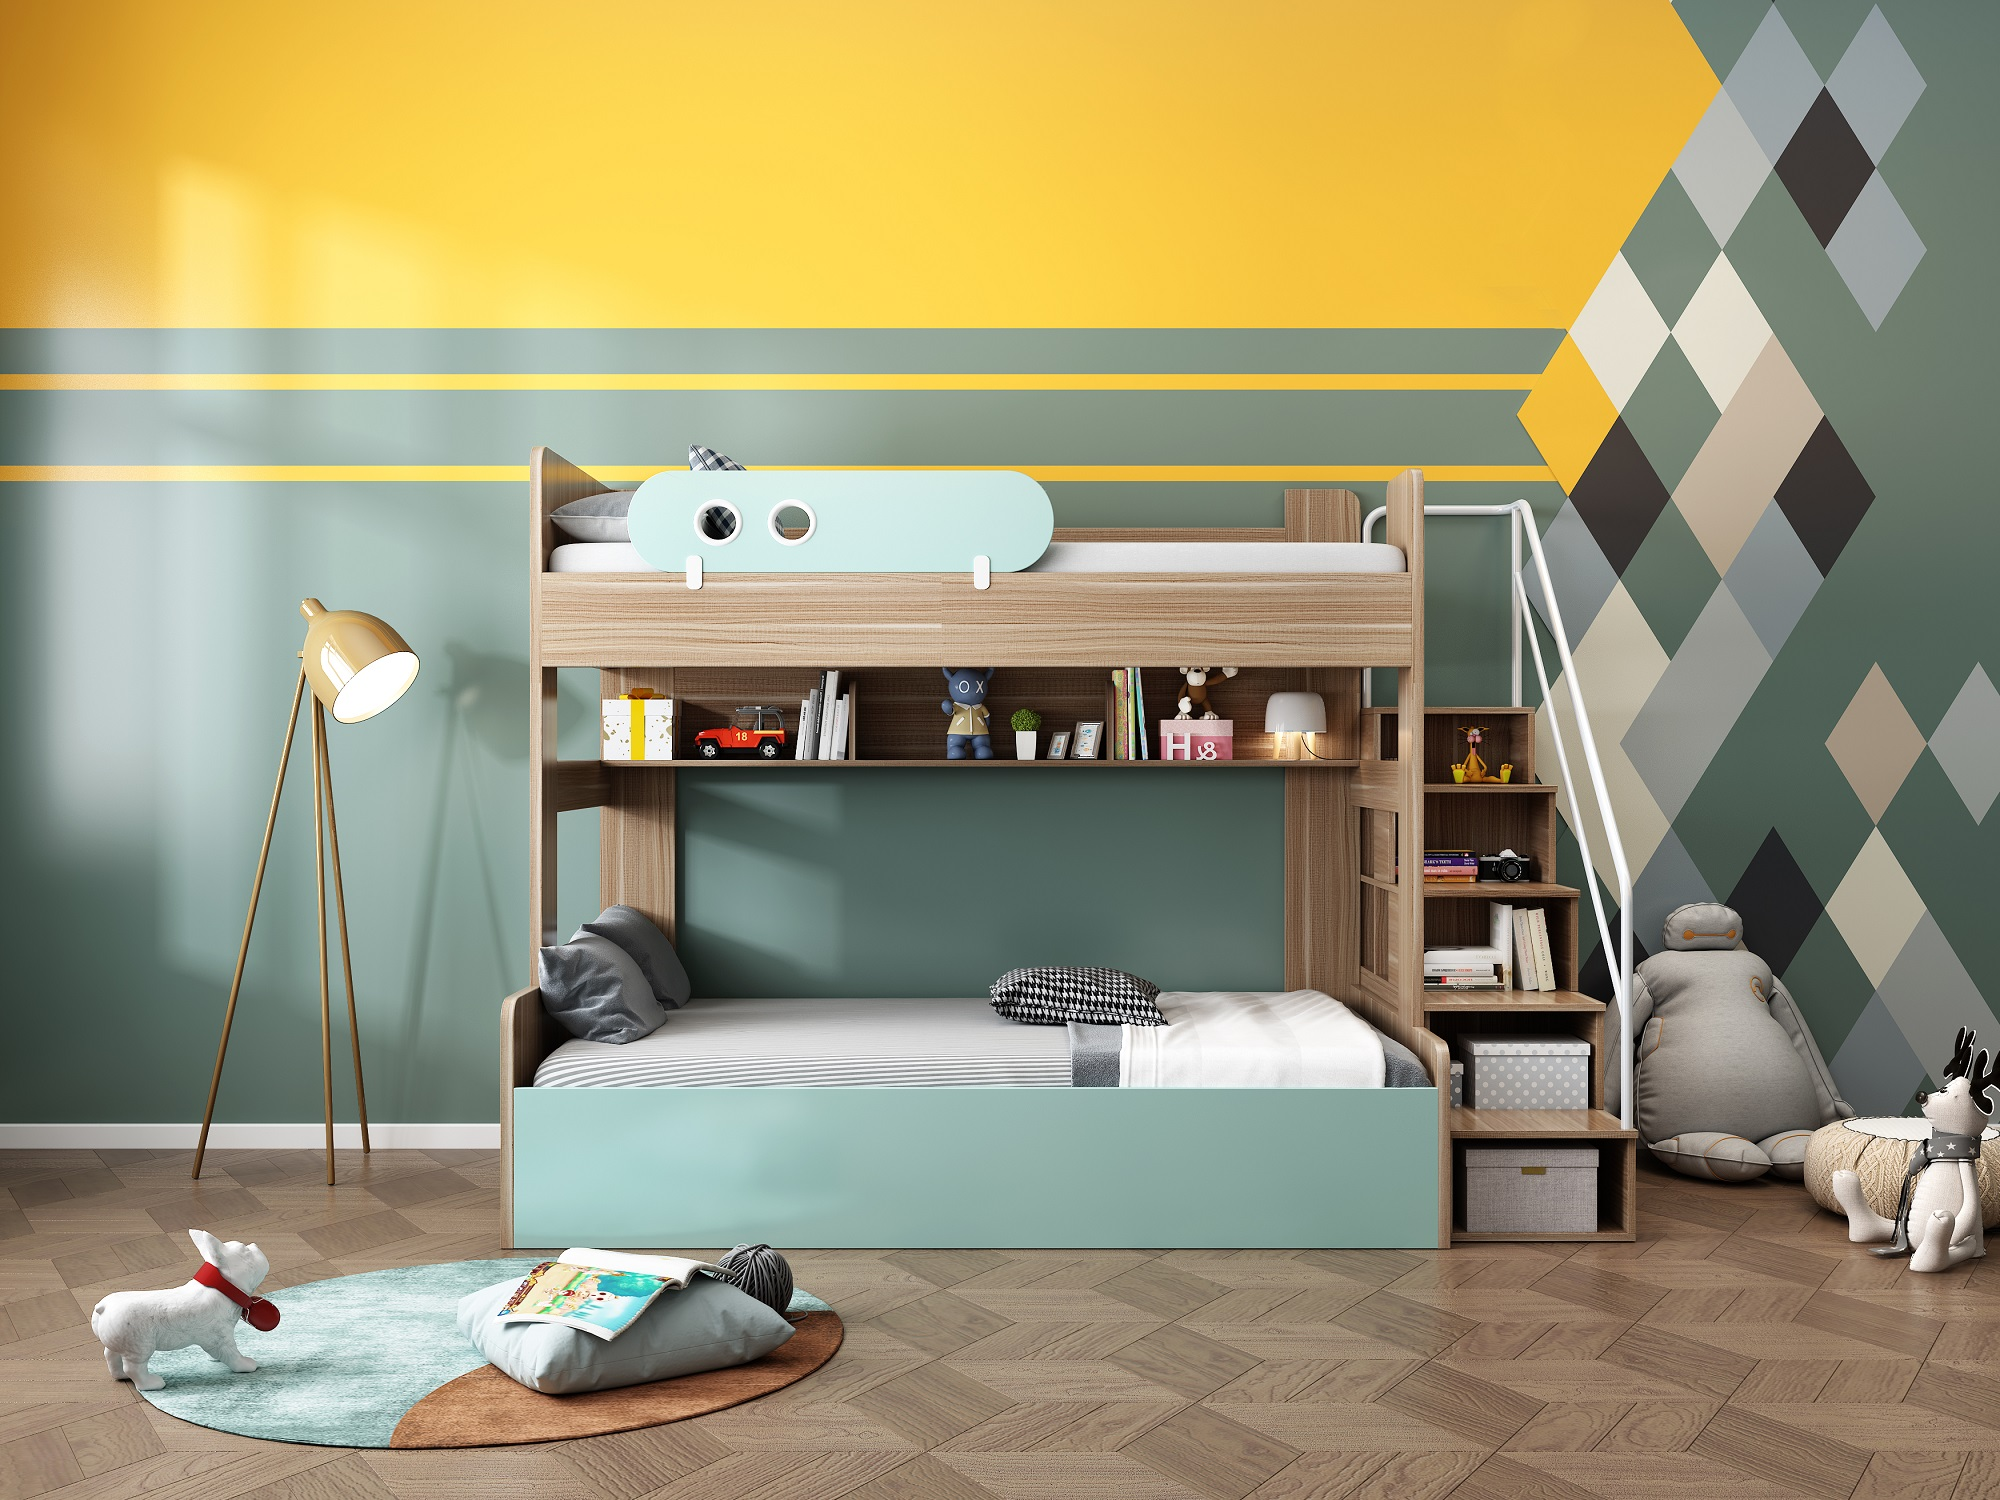 How to Decorate Children's Bedrooms and Three Precautions for Children's Bedroom Decoration